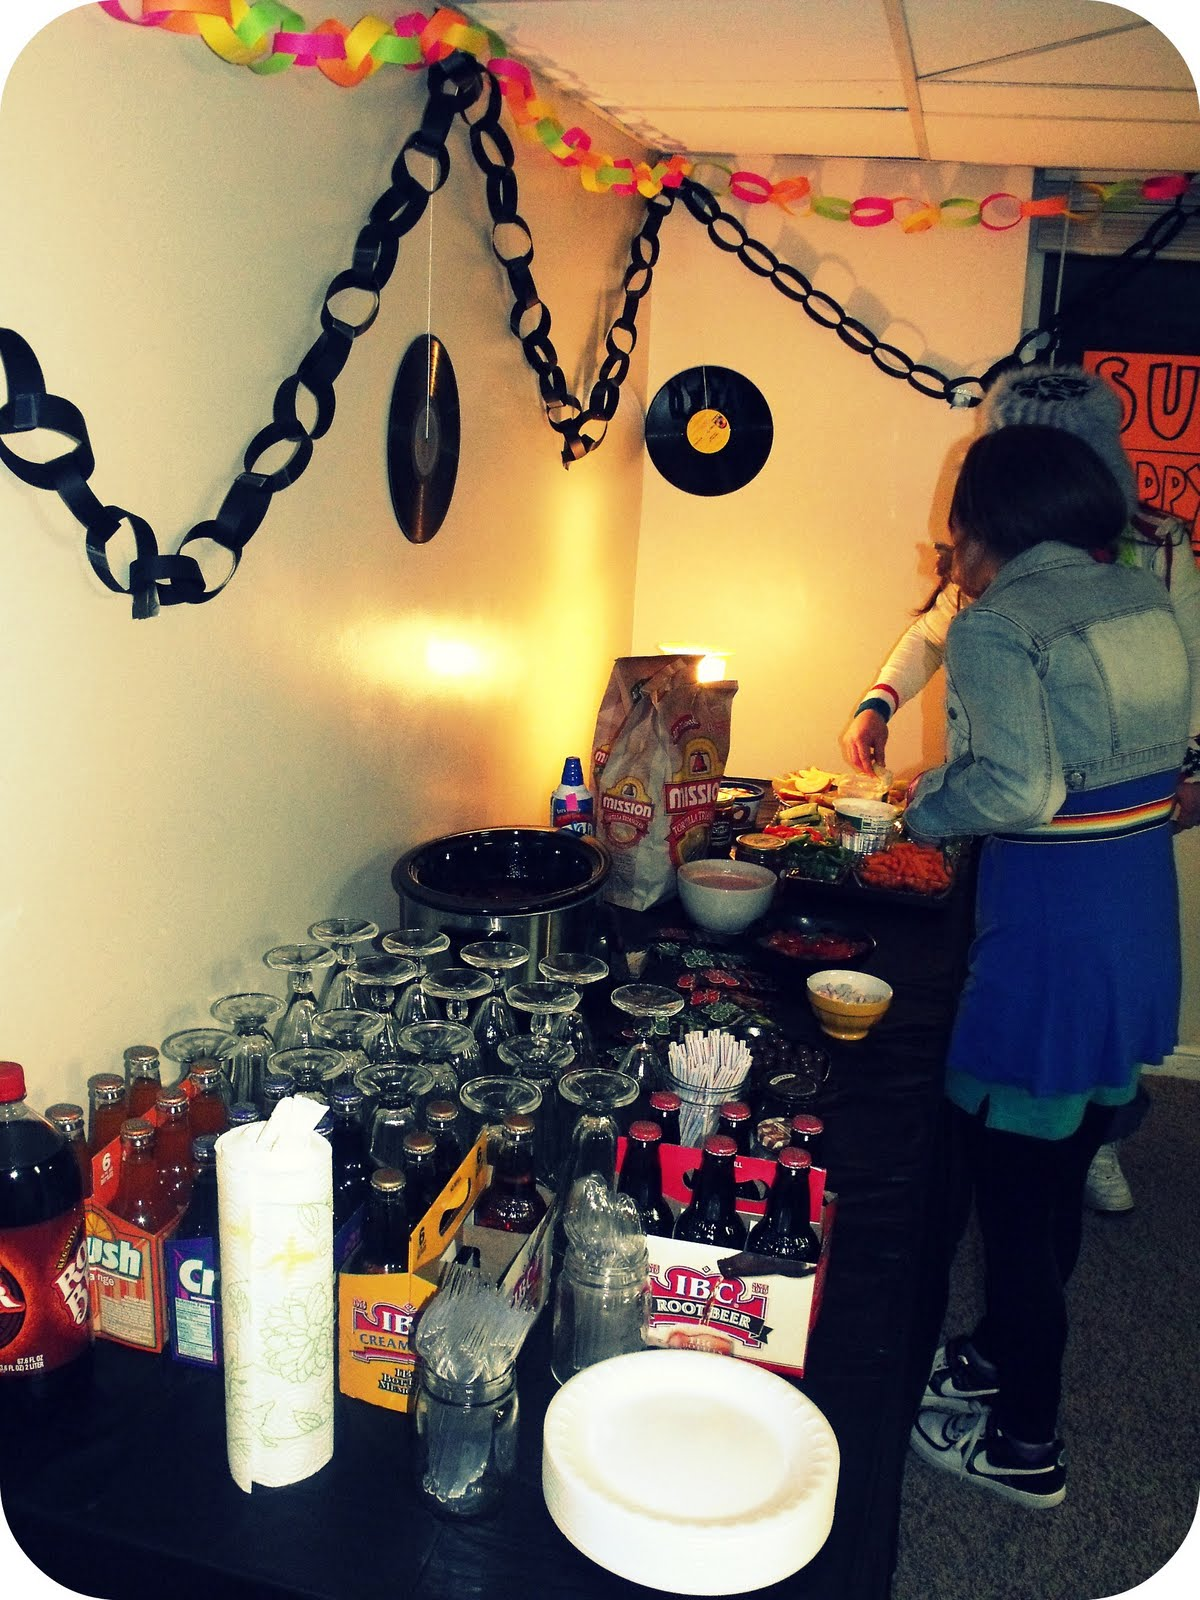 Agree, 80s style surprise party for adults right! excellent